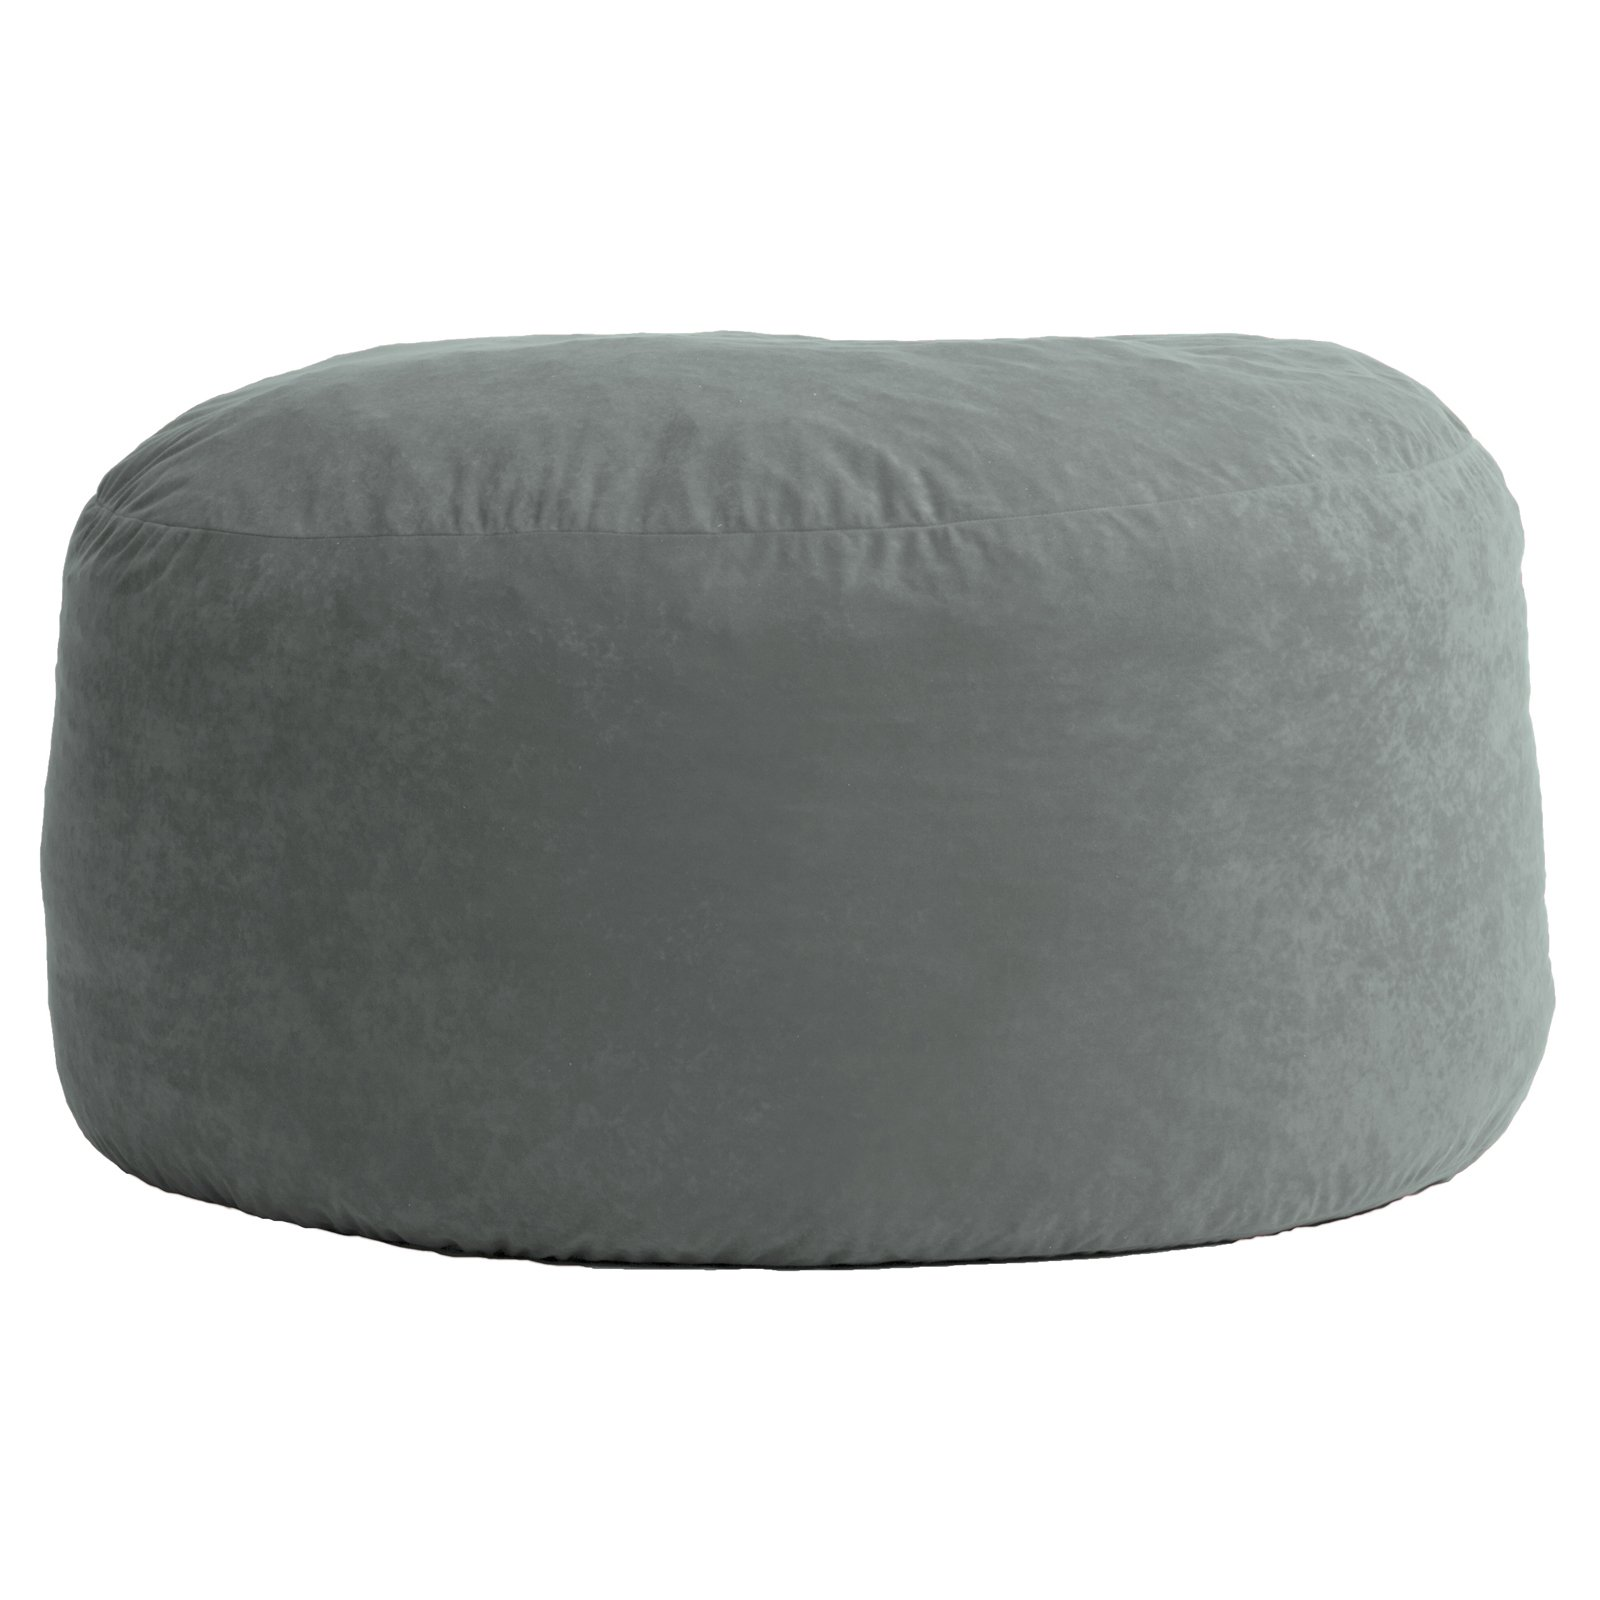 Bean Bag Footstool Big Joe Large 4 Fuf Bean Bag Chair Multiple Colors Fabrics